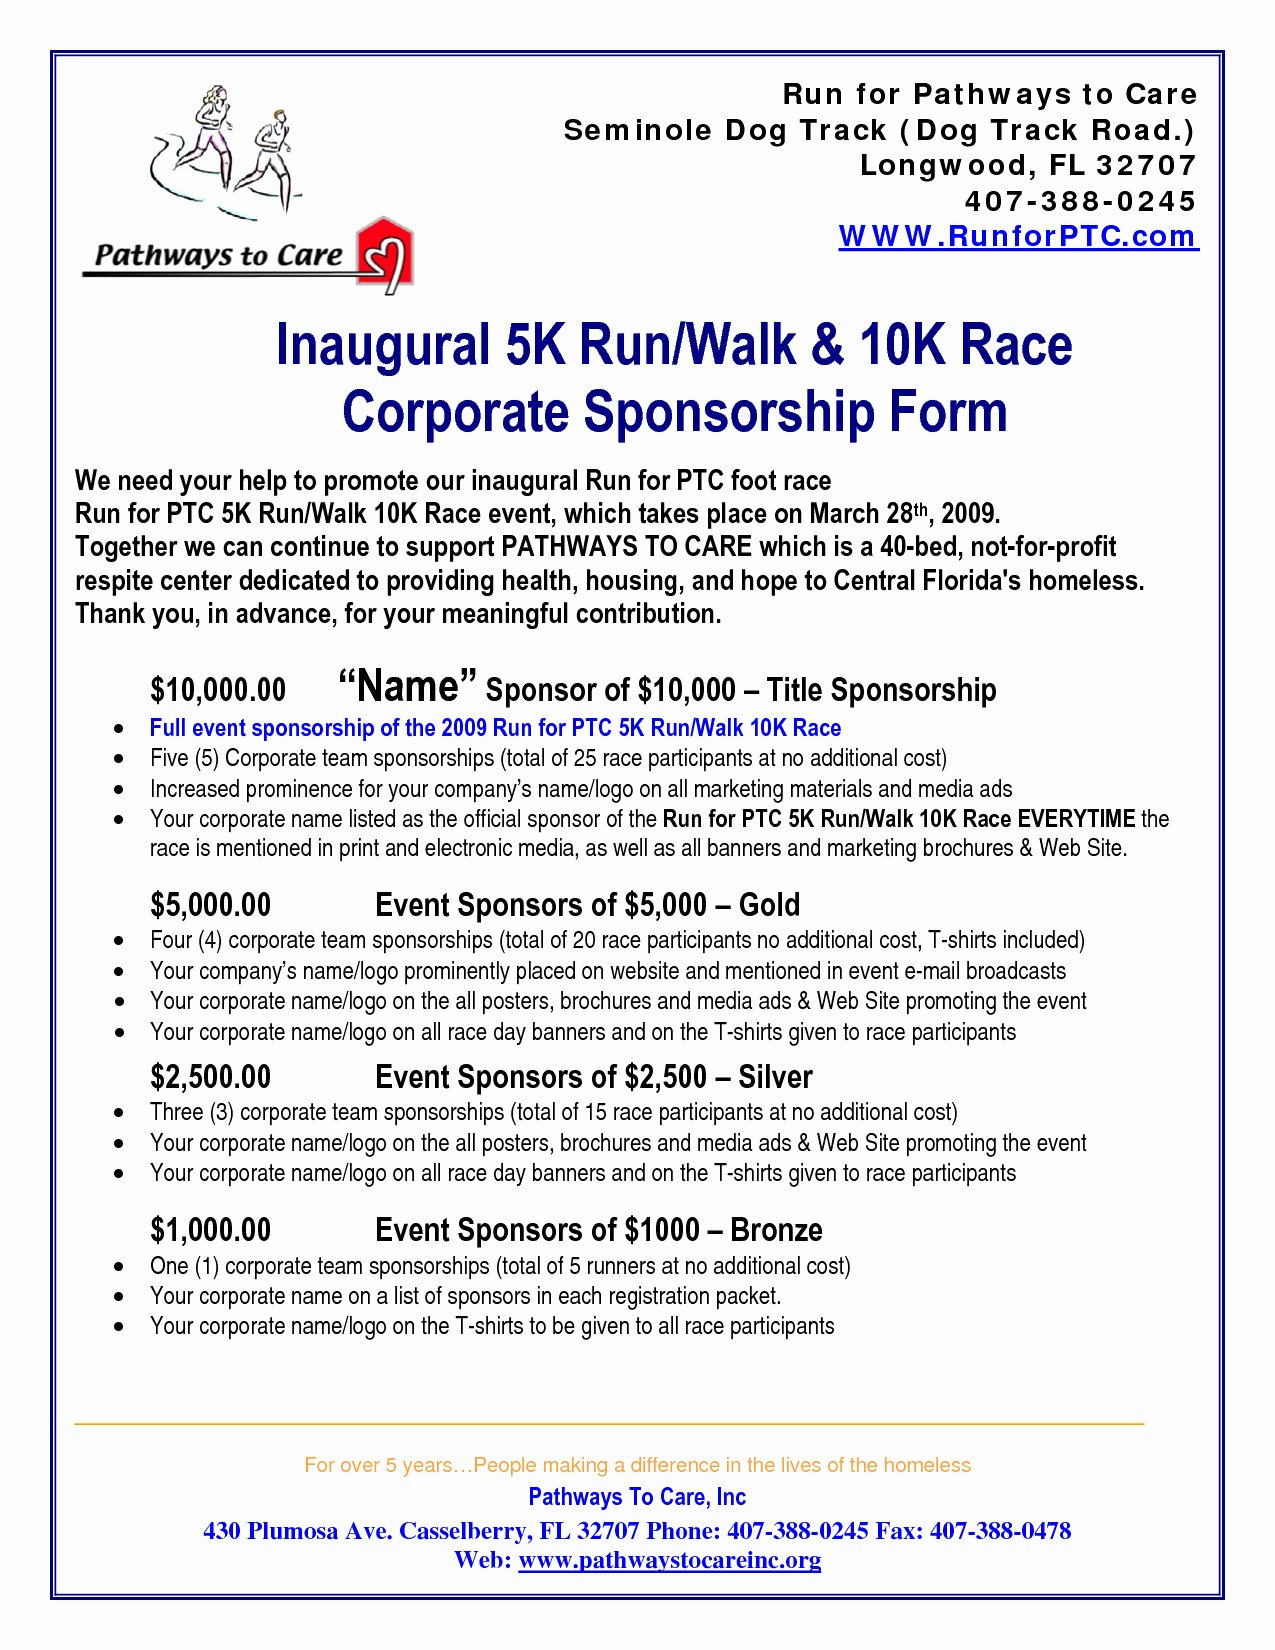 Event Sponsorship form Template Fresh 5k Sponsorship Letter Template Examples